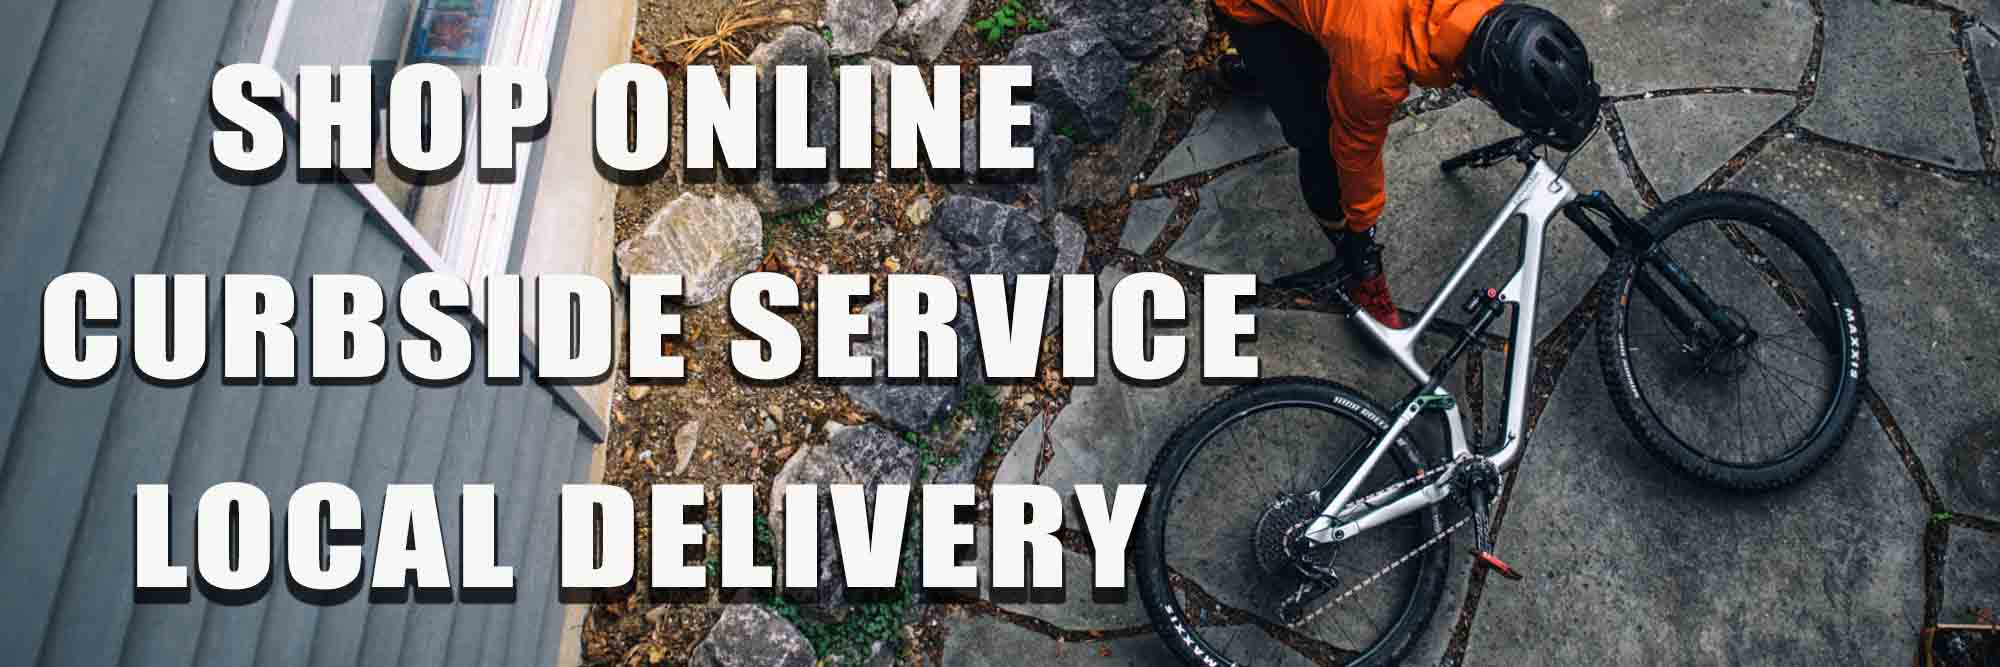 Shop Online, Curbside Service, Local Delivery